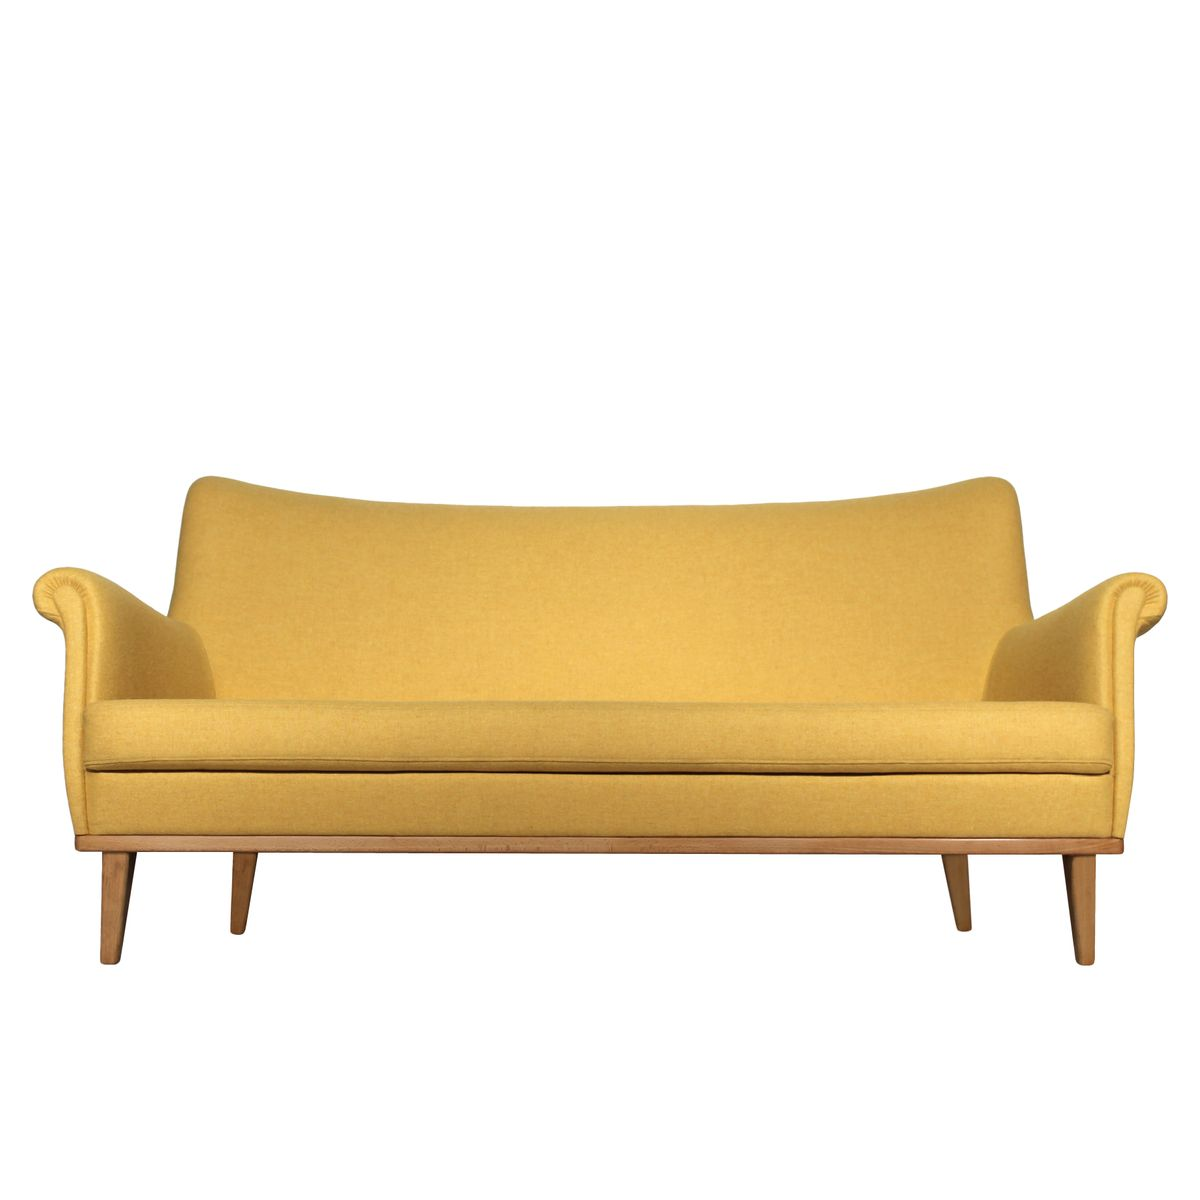 Yellow German Sofa 1955 For Sale At Pamono